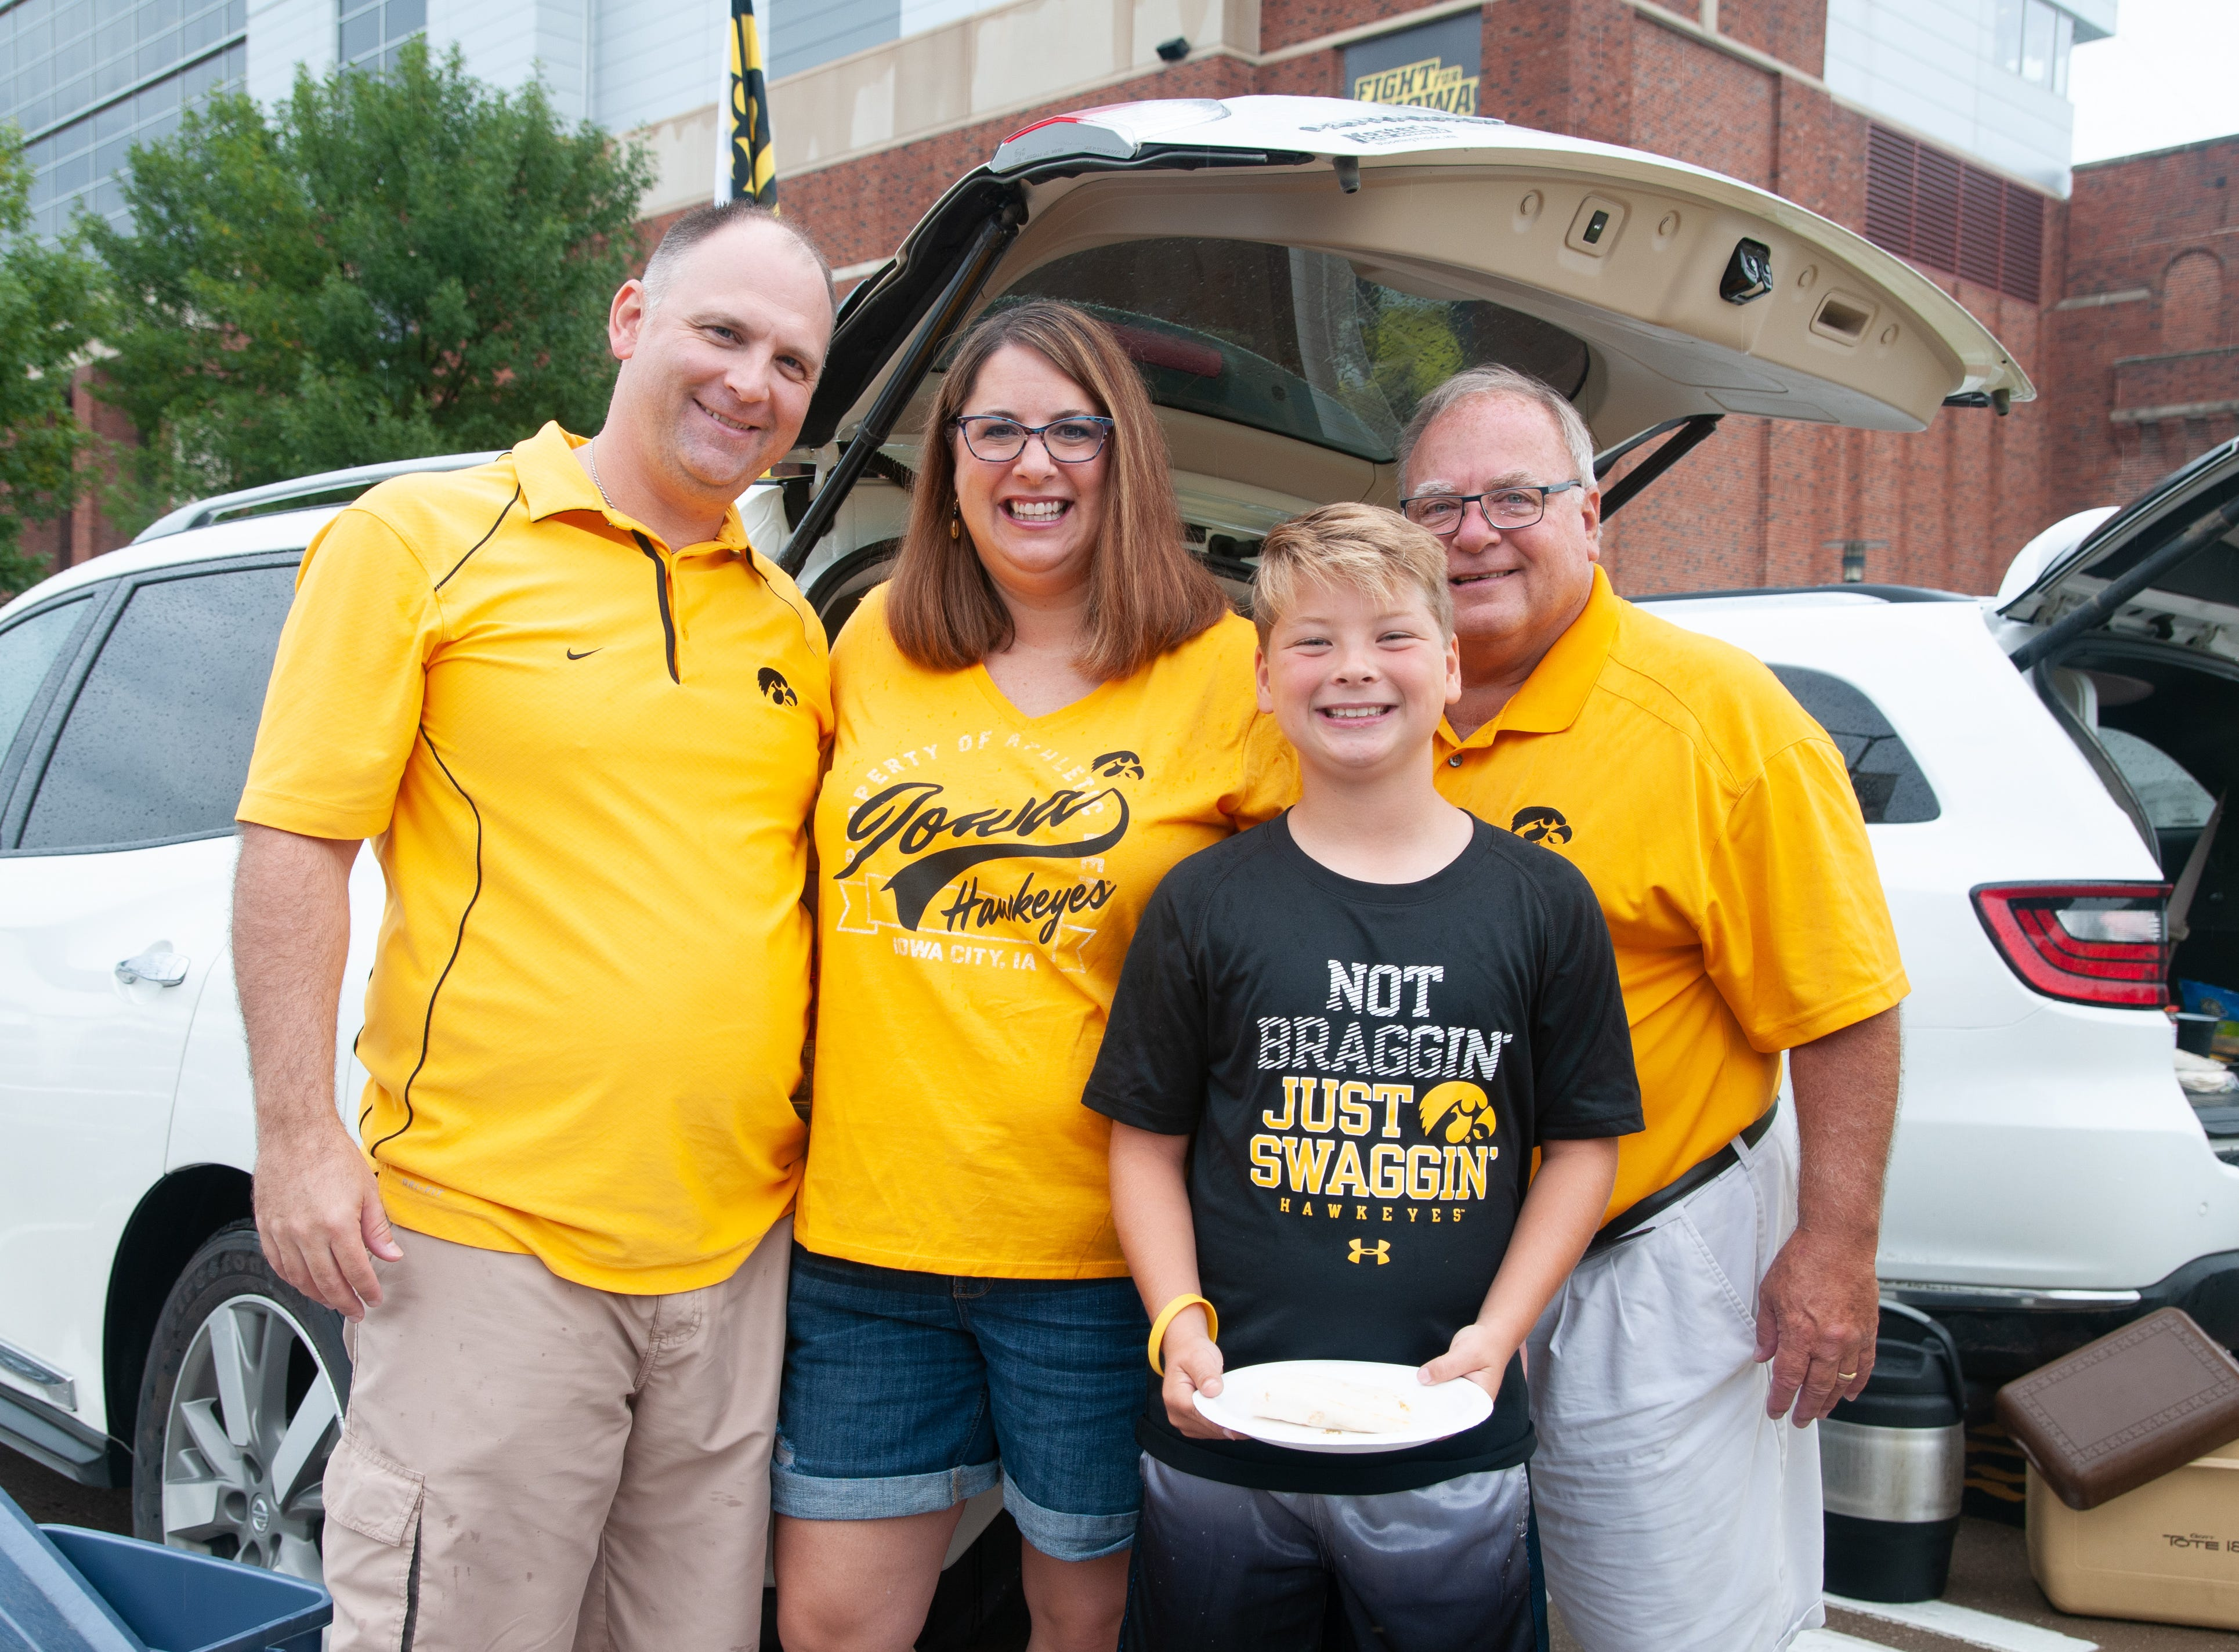 The O'Connor family, (left), and Darrel Burns, 66, of Sheldon and North Liberty, Saturday, Sept. 1, 2018, while tailgating before the Iowa game against Northern Illinois in Iowa City.